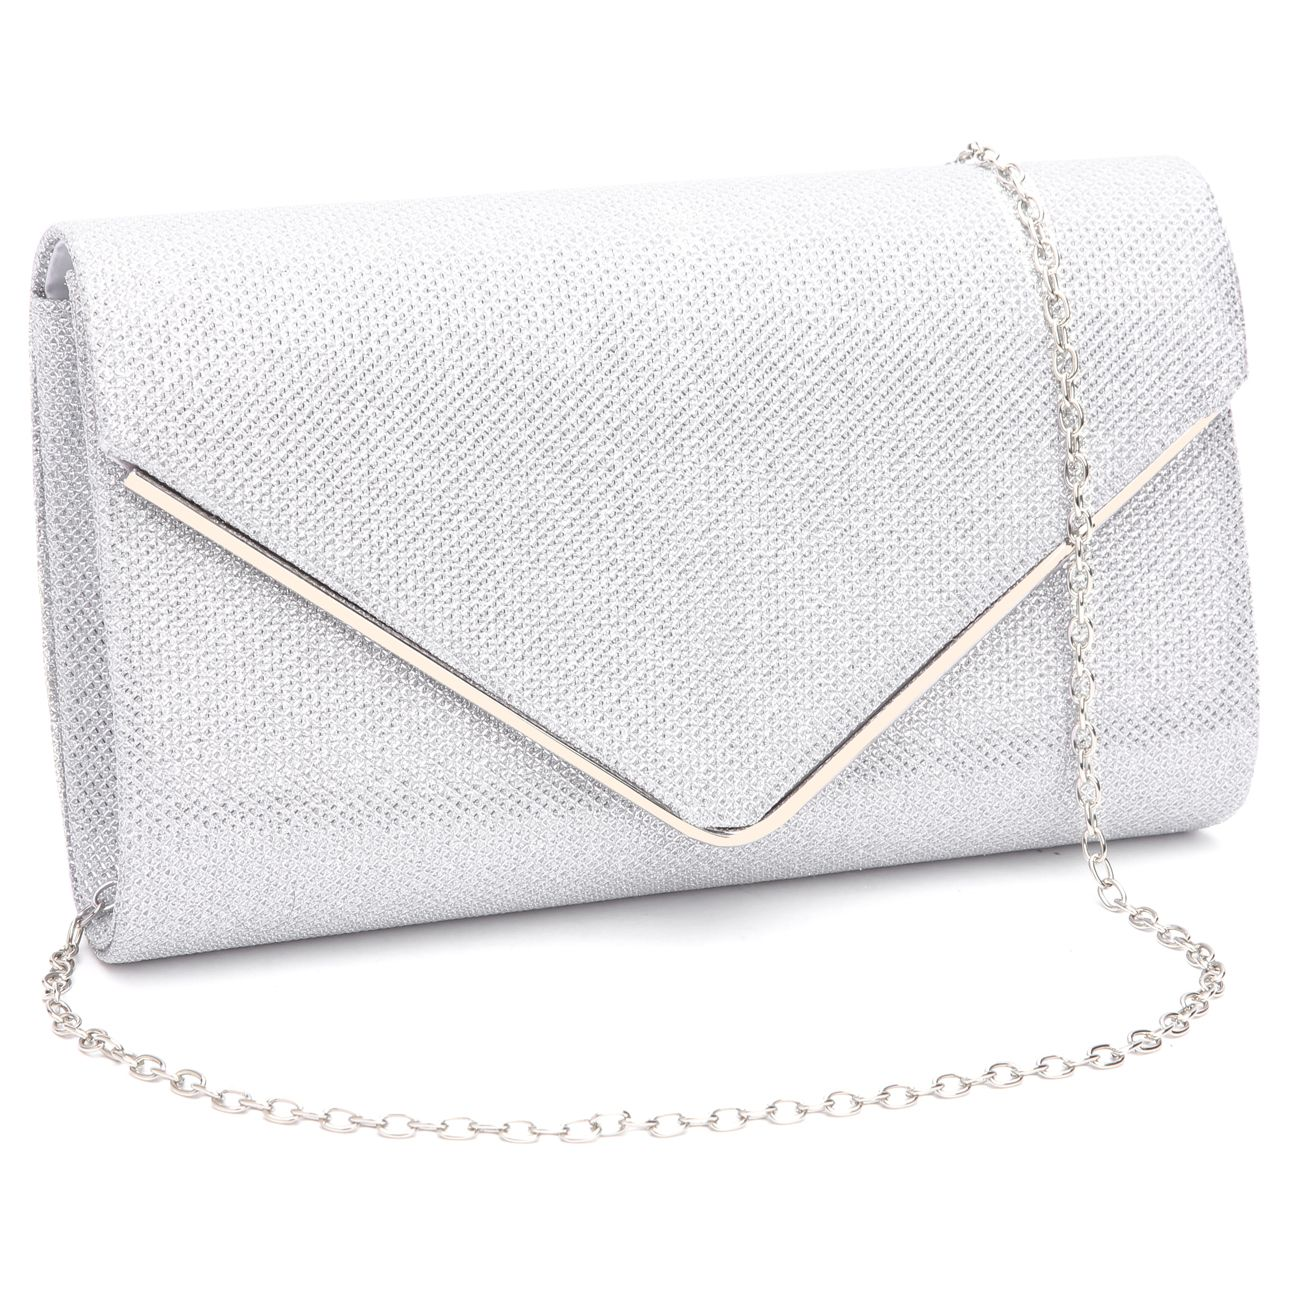 885c6c56aa Womens Shining Envelope Clutch Purses Evening Bag Handbags For Wedding and  Party.